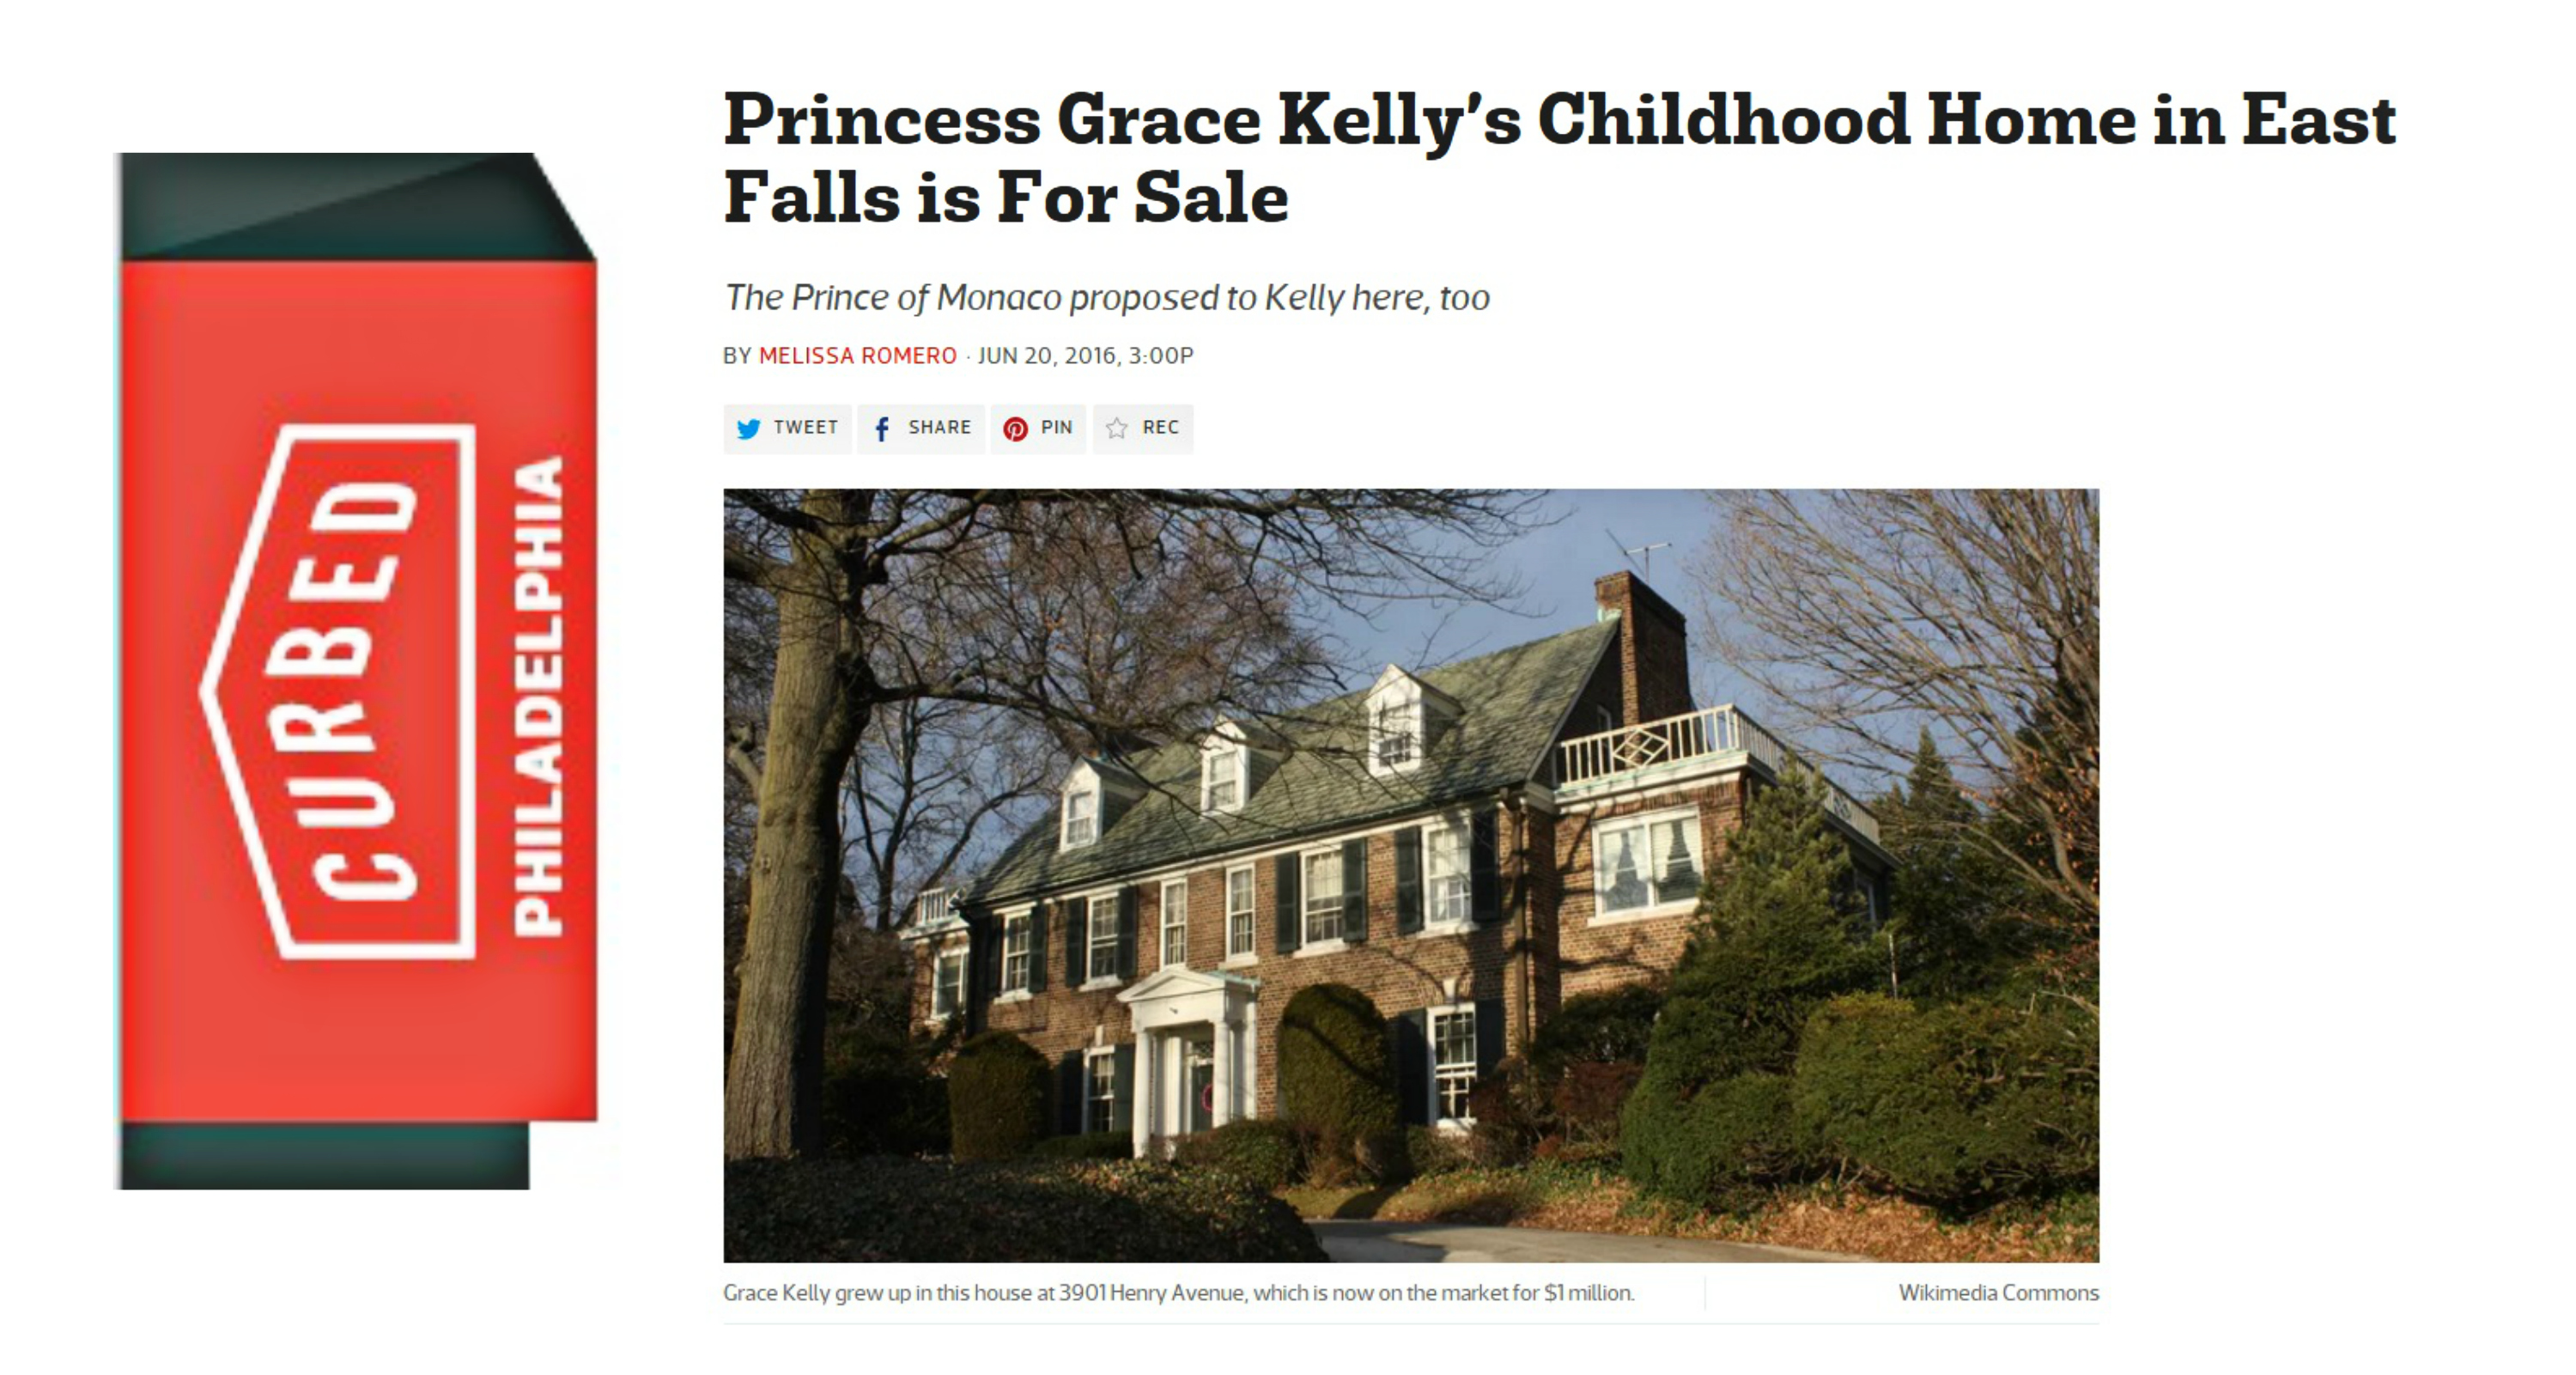 EastFallsLocal-curbed-philly-collage-grace-kelly-house.jpg